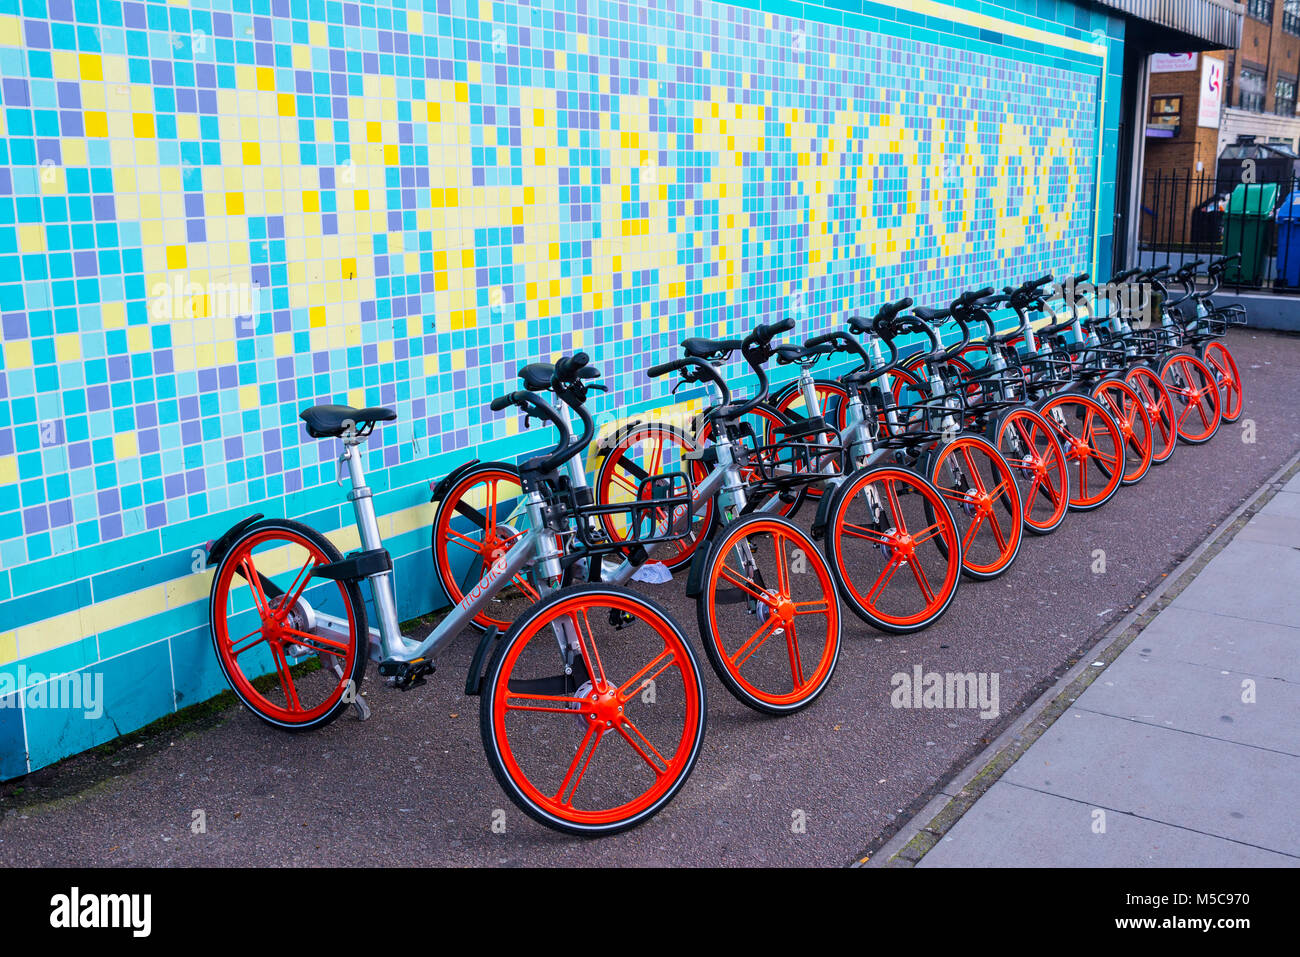 Mobike bicycles parked at a docking station in Torrens street, Angel, London. Mobike is a low cost bike-sharing - Stock Image